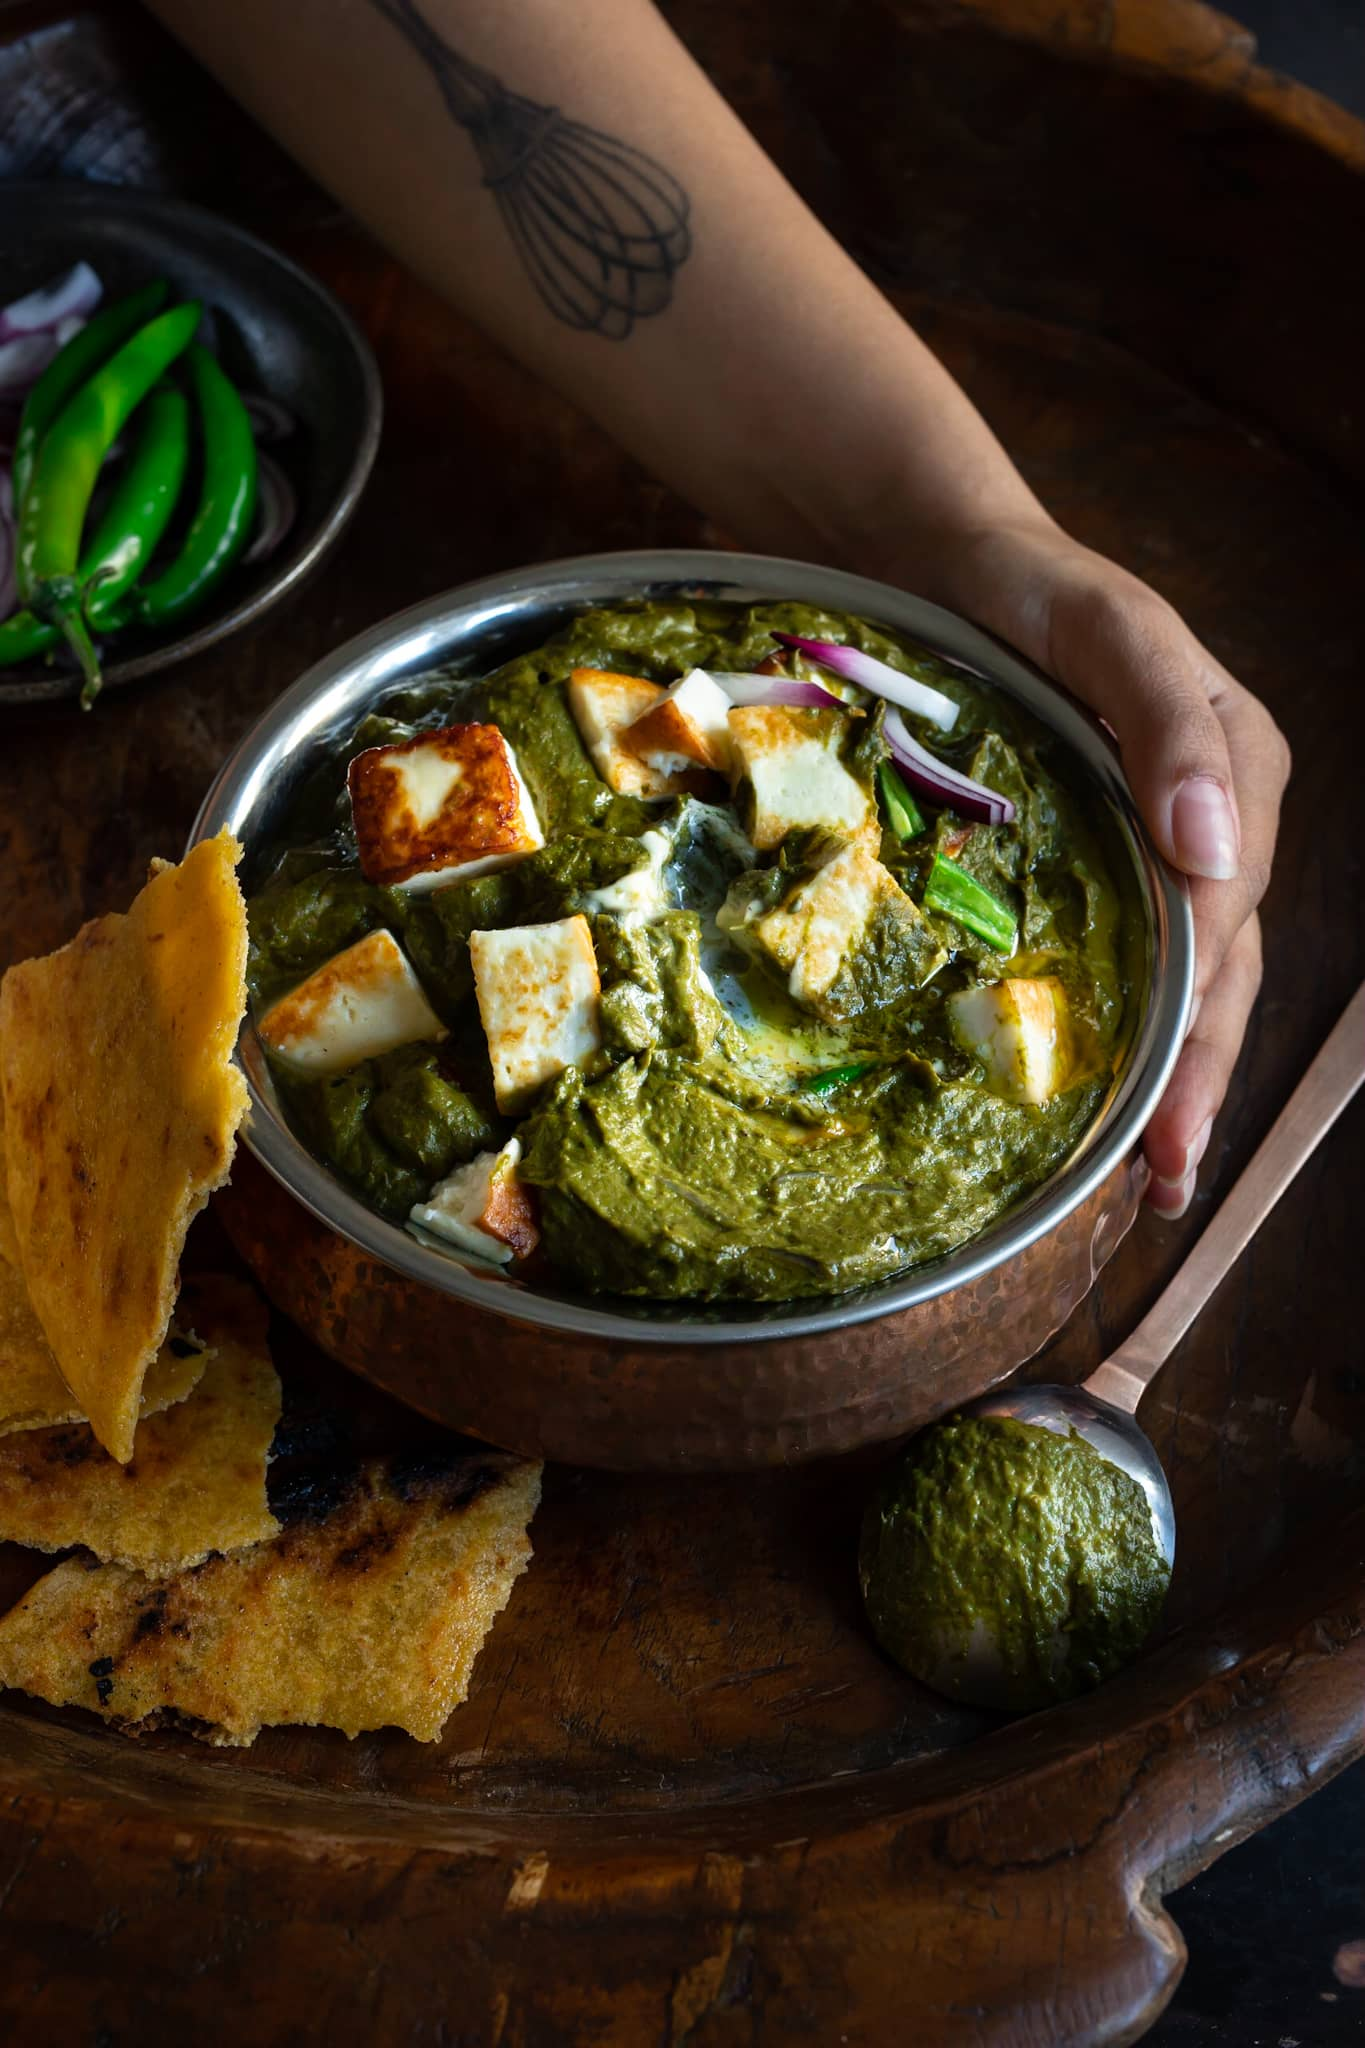 Saag - Indian curry with mustard greens